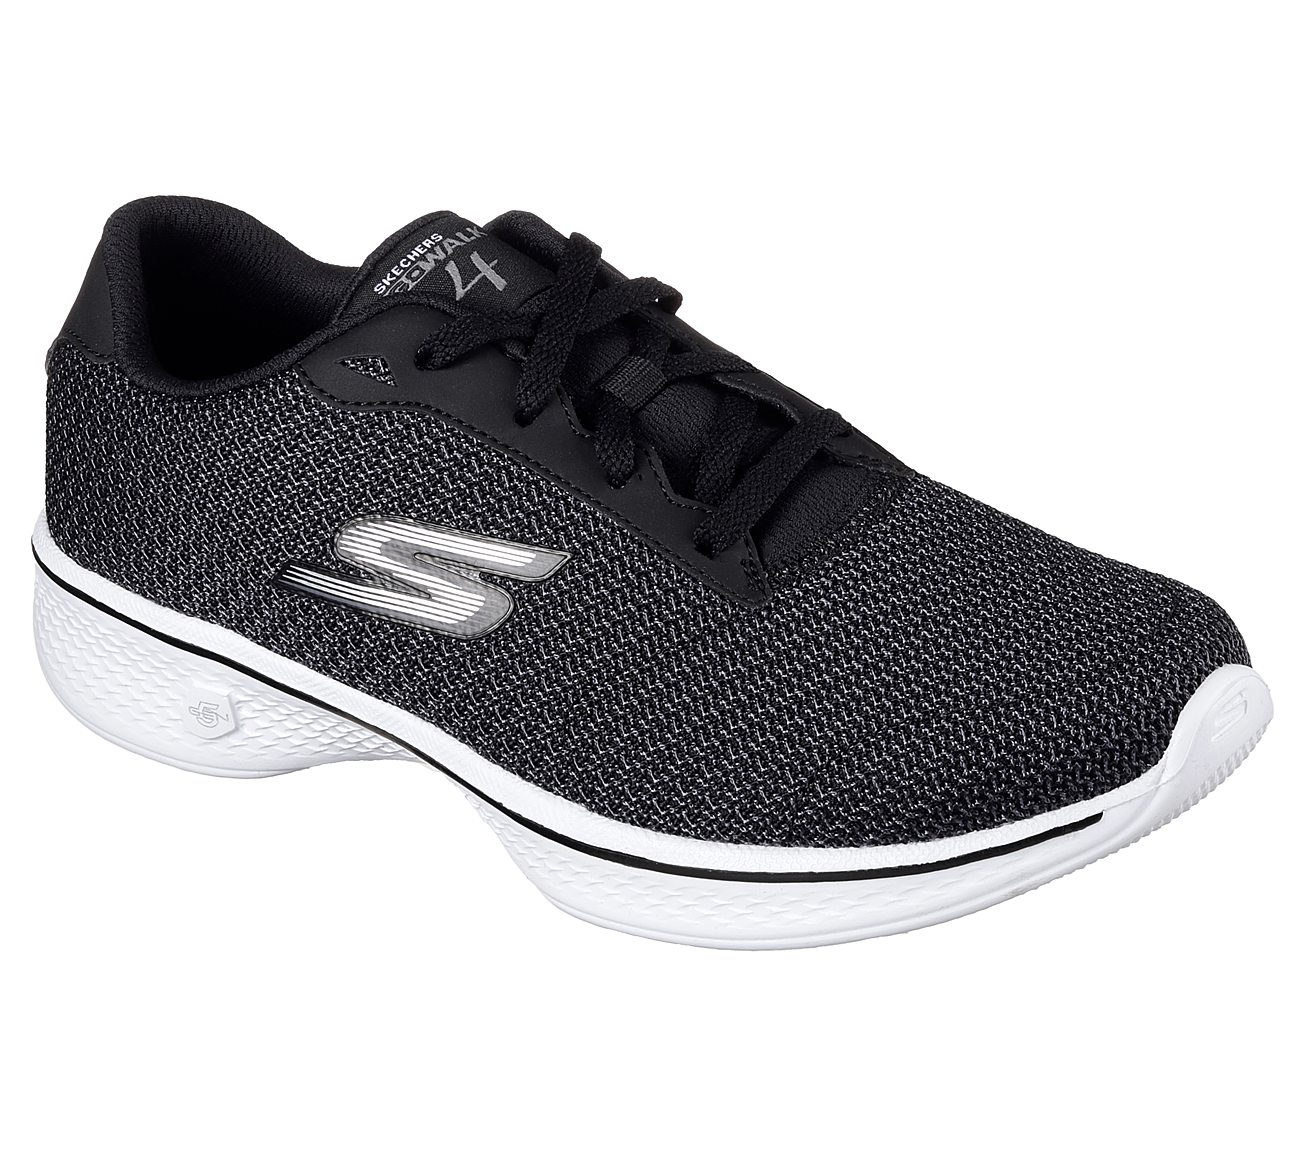 Skechers GOwalk 4 Glorify